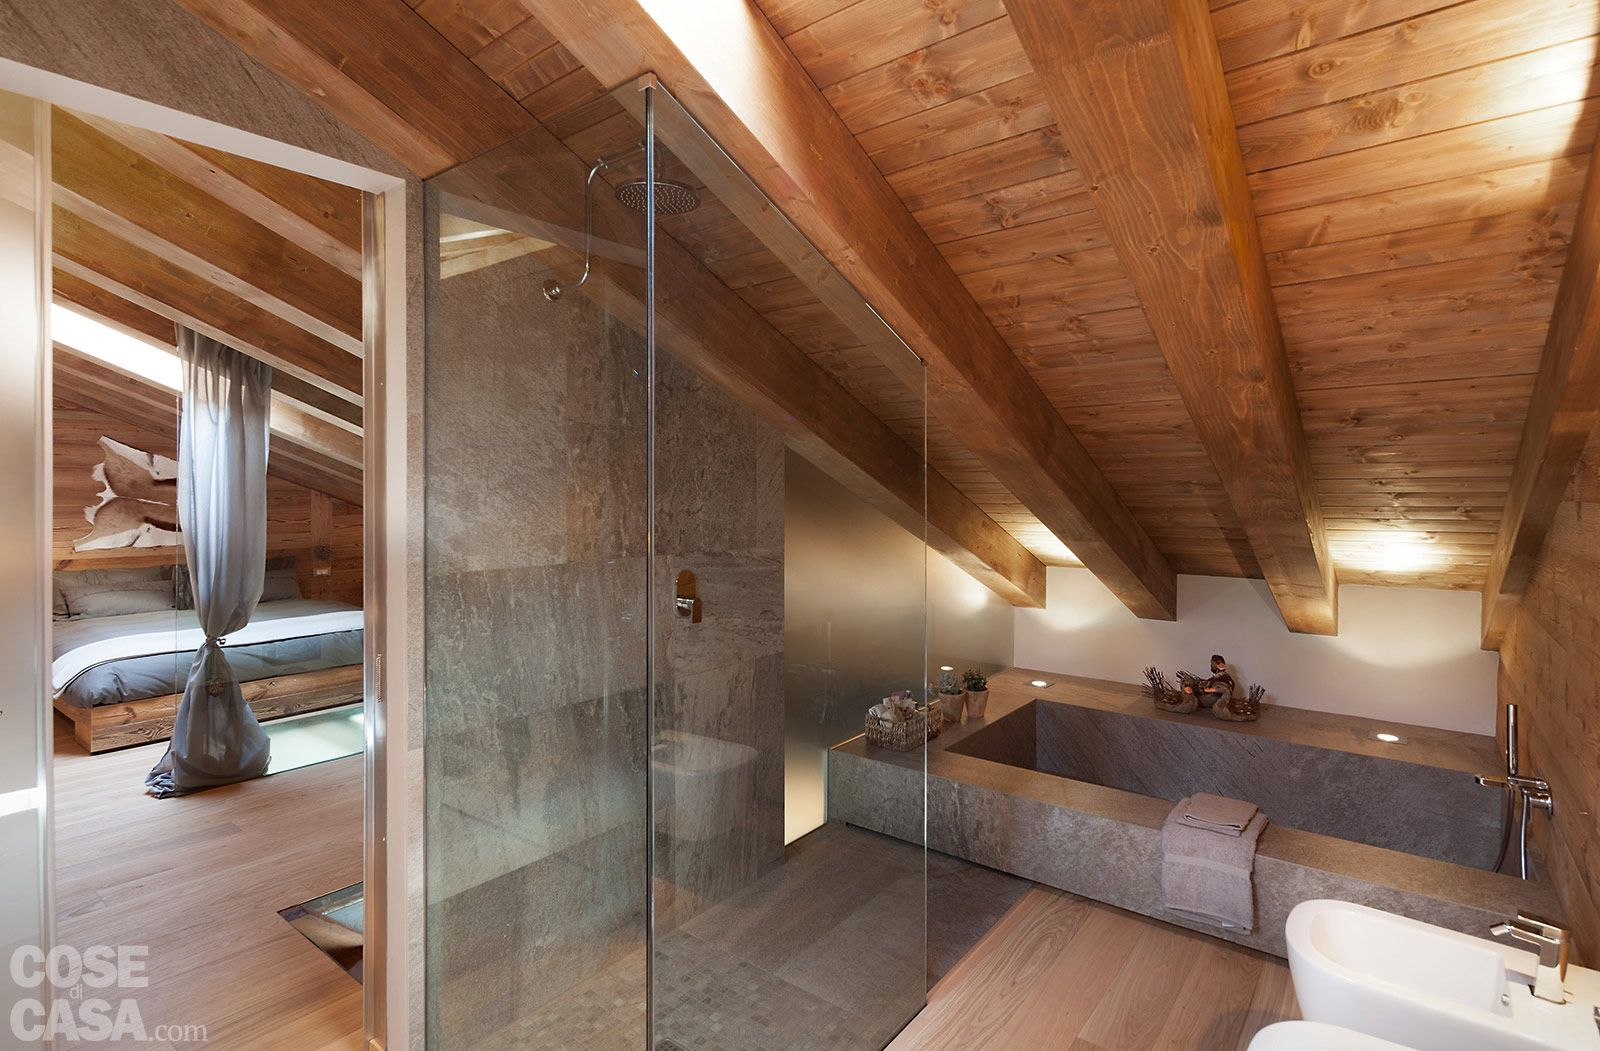 1000+ images about Idee per case, baite di montagna. on Pinterest ...